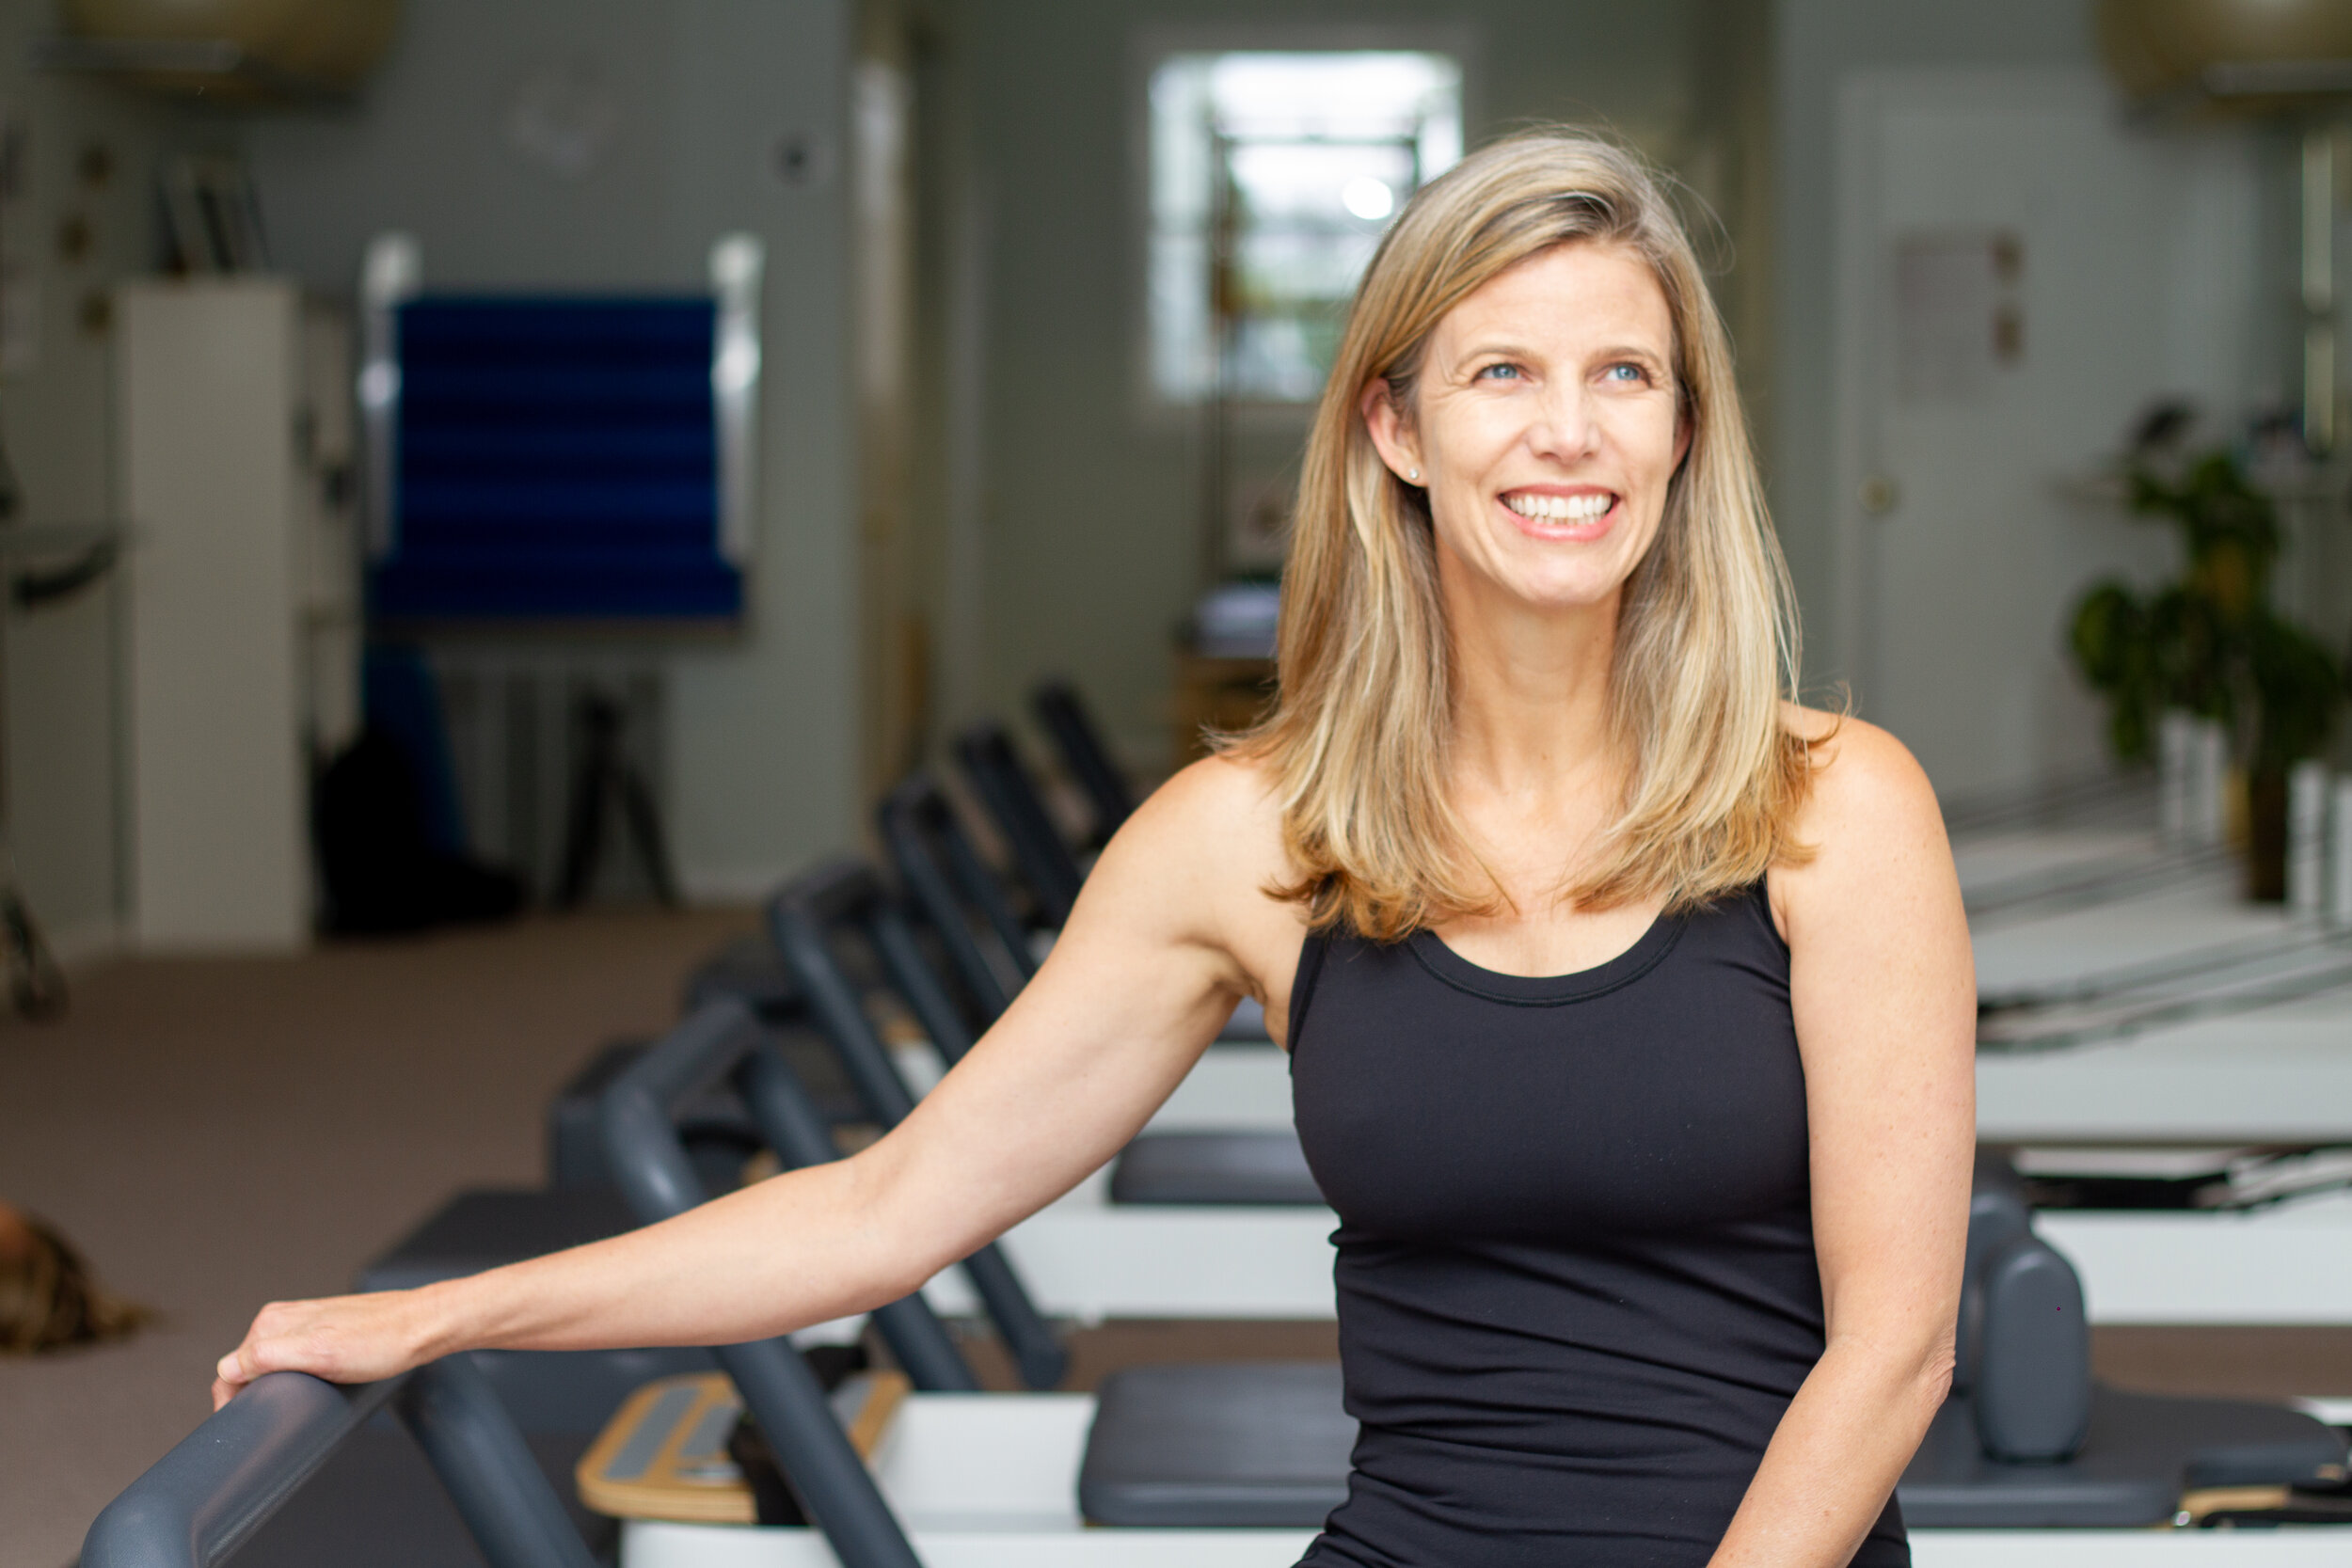 nikki blagden - who: Pilates instructor, Functional Range Conditioning Mobility Specialist and Restorative Exercise Specialisthometown: danville, camotto: move more, move differently, move often. movement matters.interesting fact: Jumped all in with Pilates after rehabbing a shoulder injury and realizing all the exercises she learned in PT were from Pilates class.